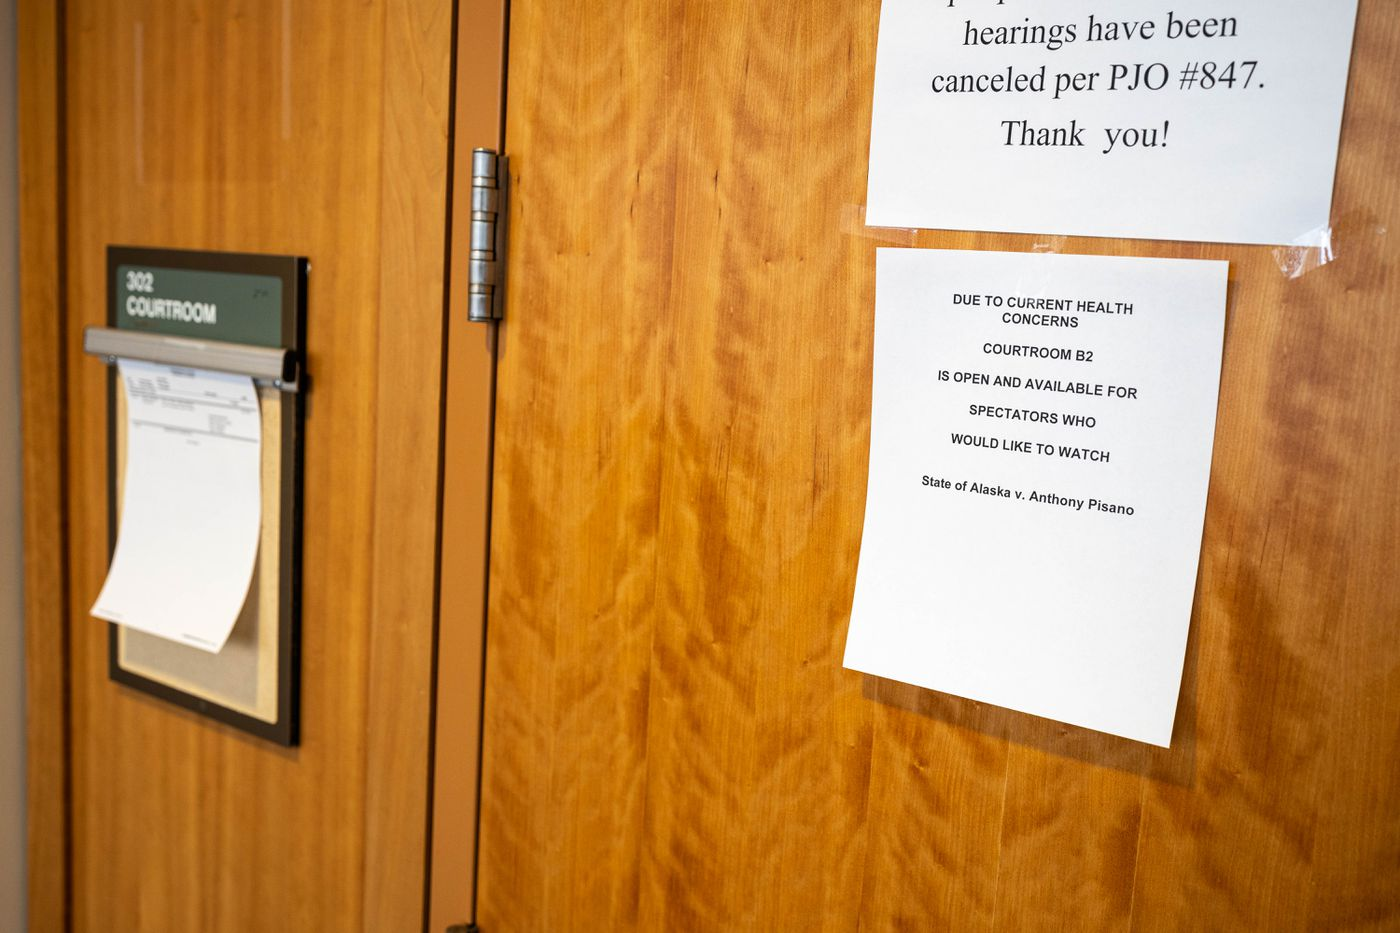 A sign on the door of a courtroom instructs people that due to current health concerns, the room is closed to the public and that they should watch the proceedings over a live video feed on Wednesday, March 18, 2020 at the Nesbett Courthouse in Anchorage. The case being tried is State of Alaska v. Anthony Pisano, who is charged with murder. (Loren Holmes / ADN)